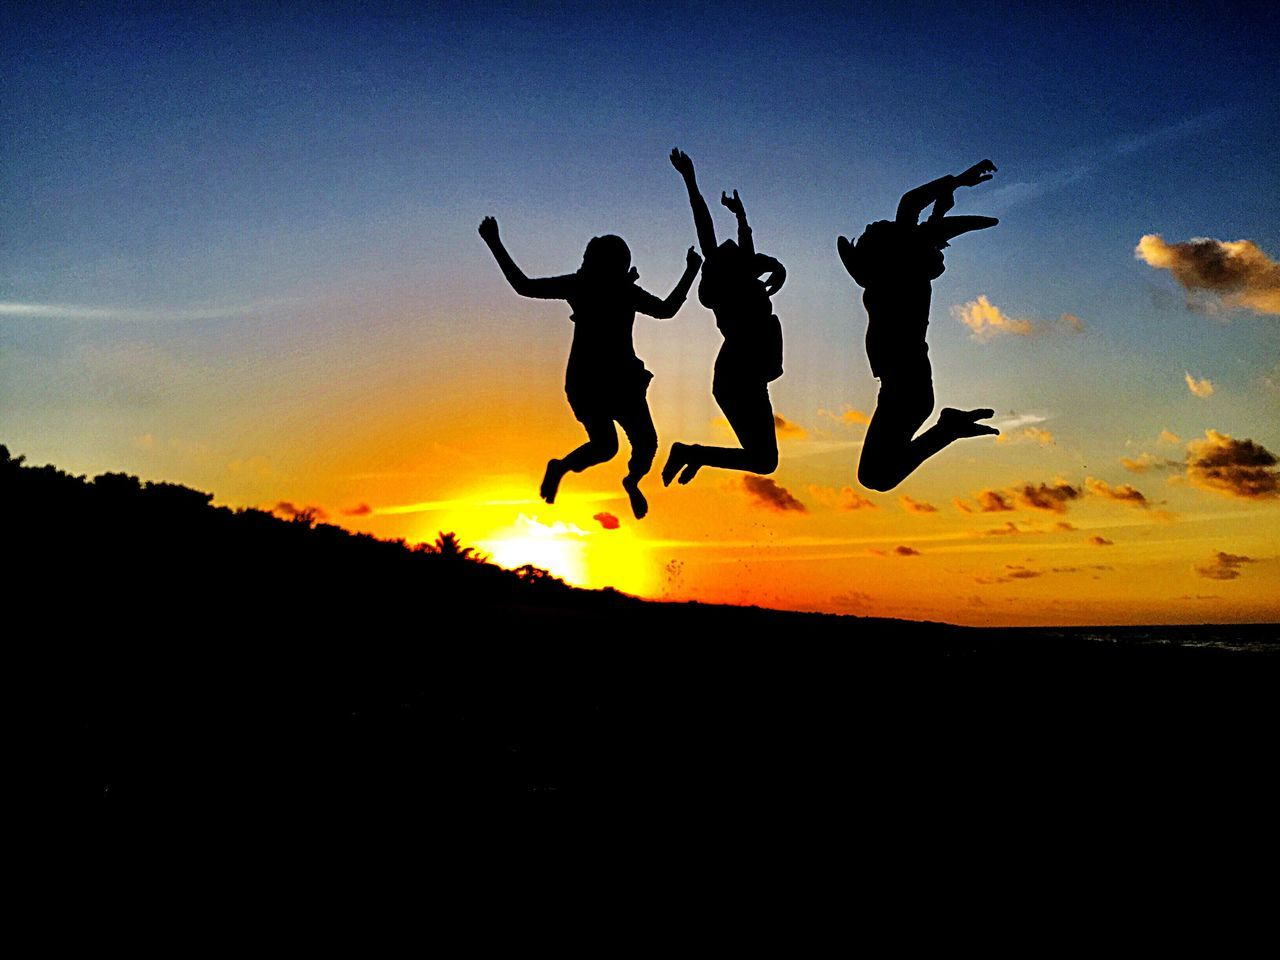 silhouette, sunset, energetic, jumping, full length, mid-air, nature, togetherness, vitality, excitement, sky, men, enjoyment, outdoors, real people, beauty in nature, day, people